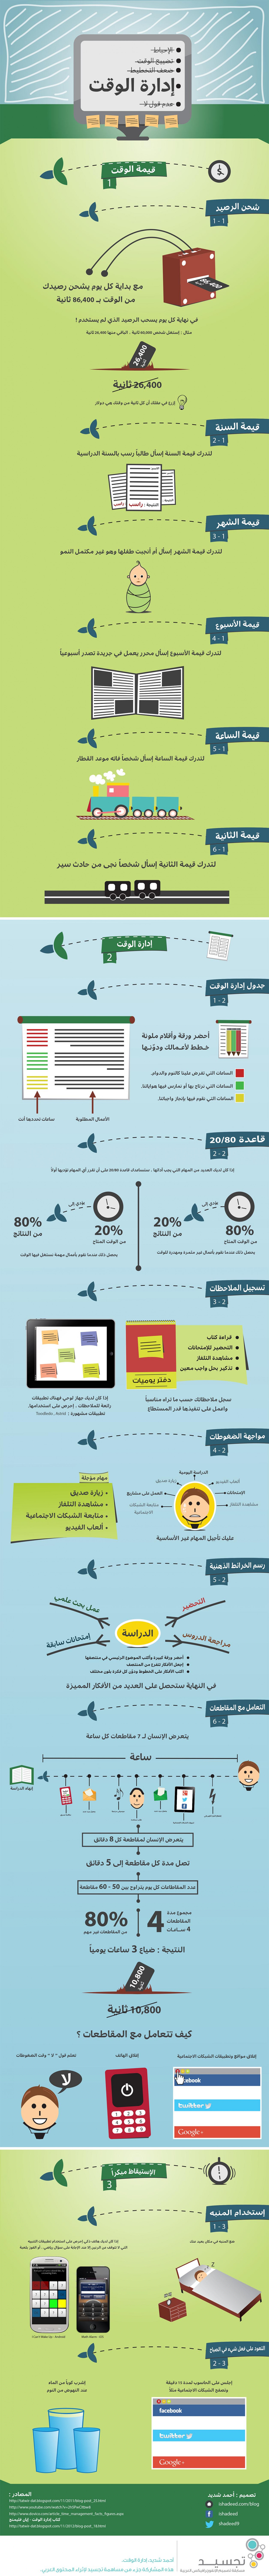 إدارة الوقت - Time Managment Infographic